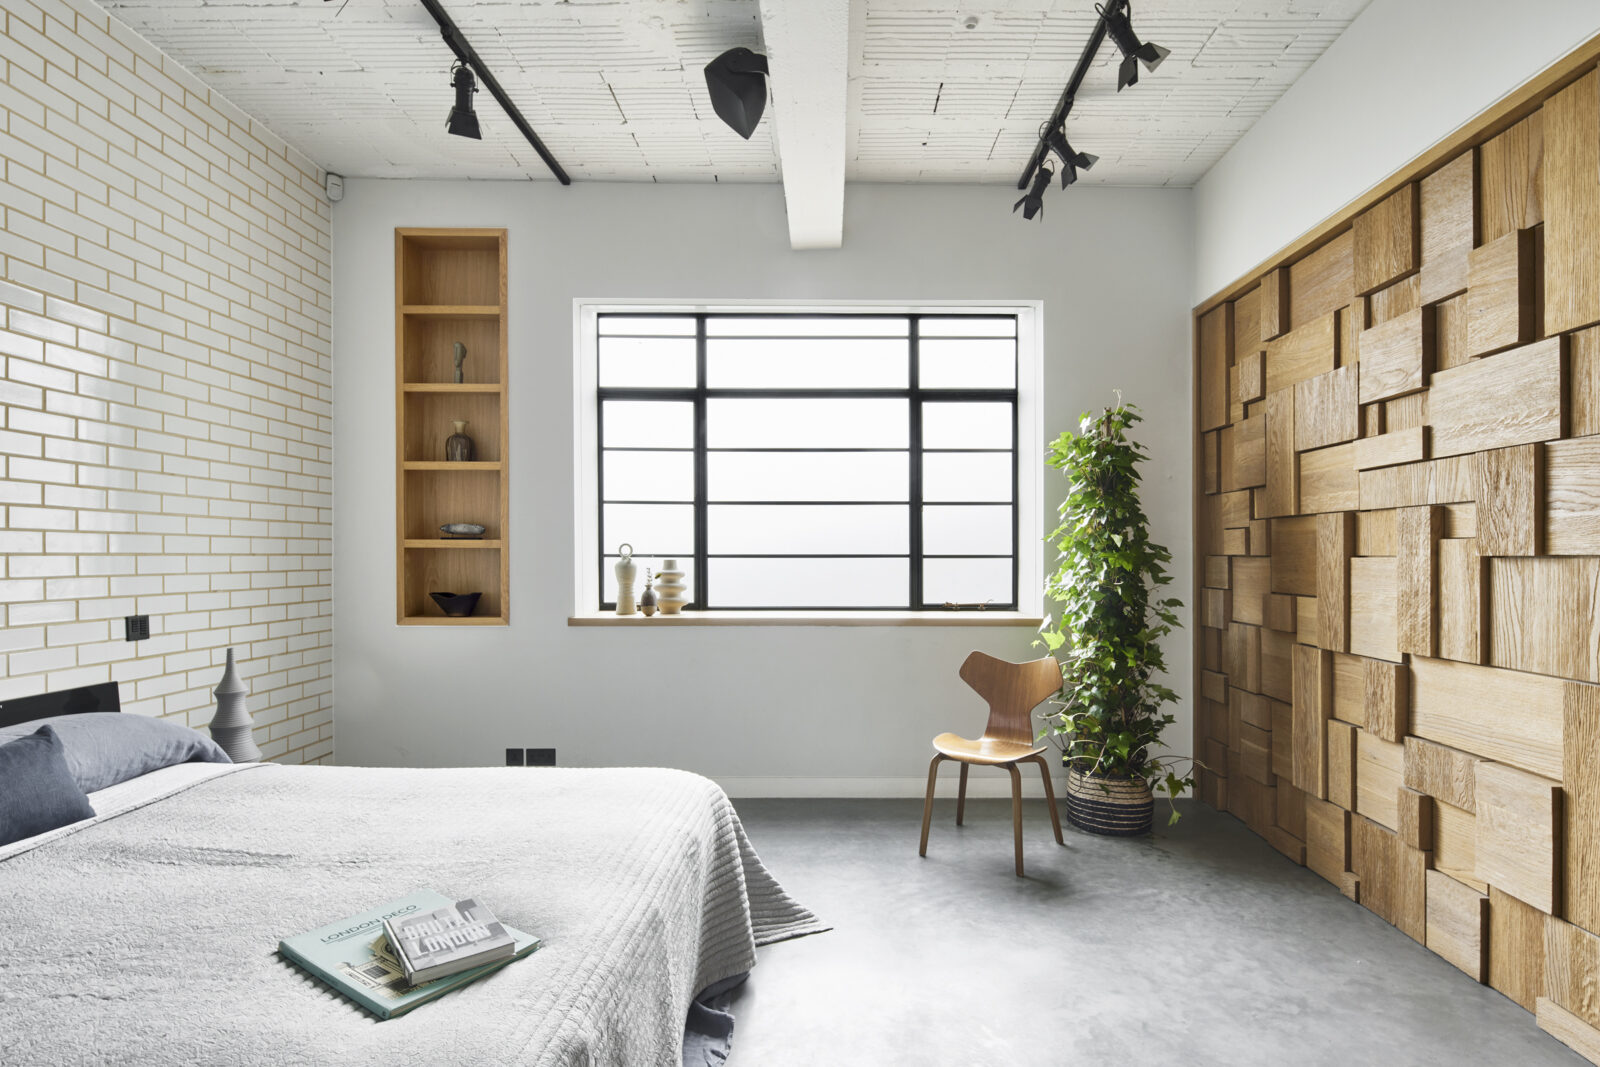 The practice has added oak panel walls that are moveable